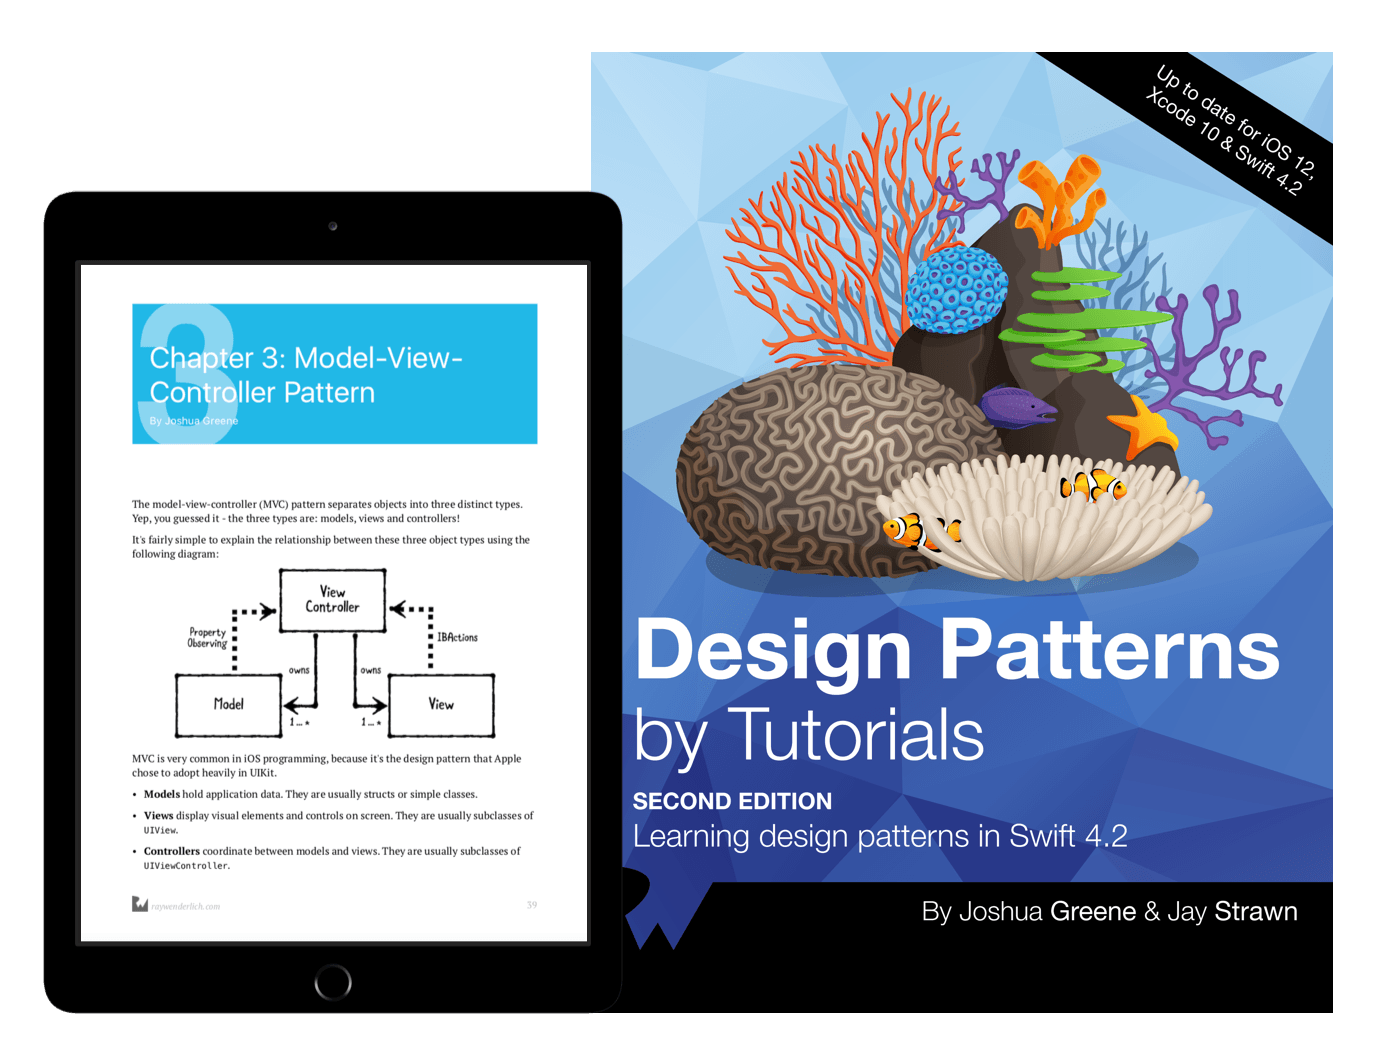 Design Patterns by Tutorials book cover